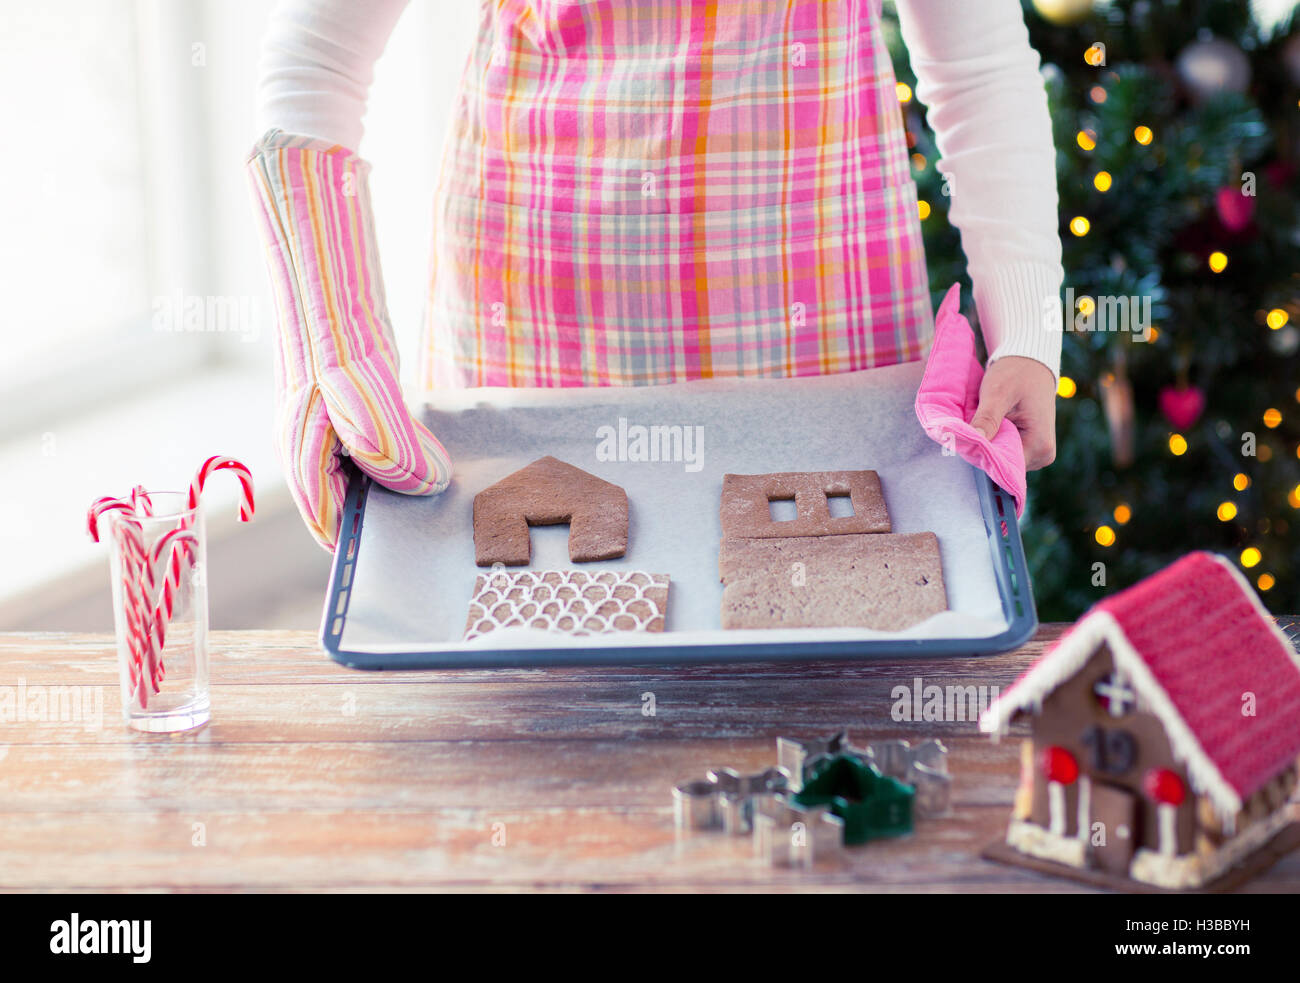 Gingerbread Gloves Stock Photos & Gingerbread Gloves Stock Images ...